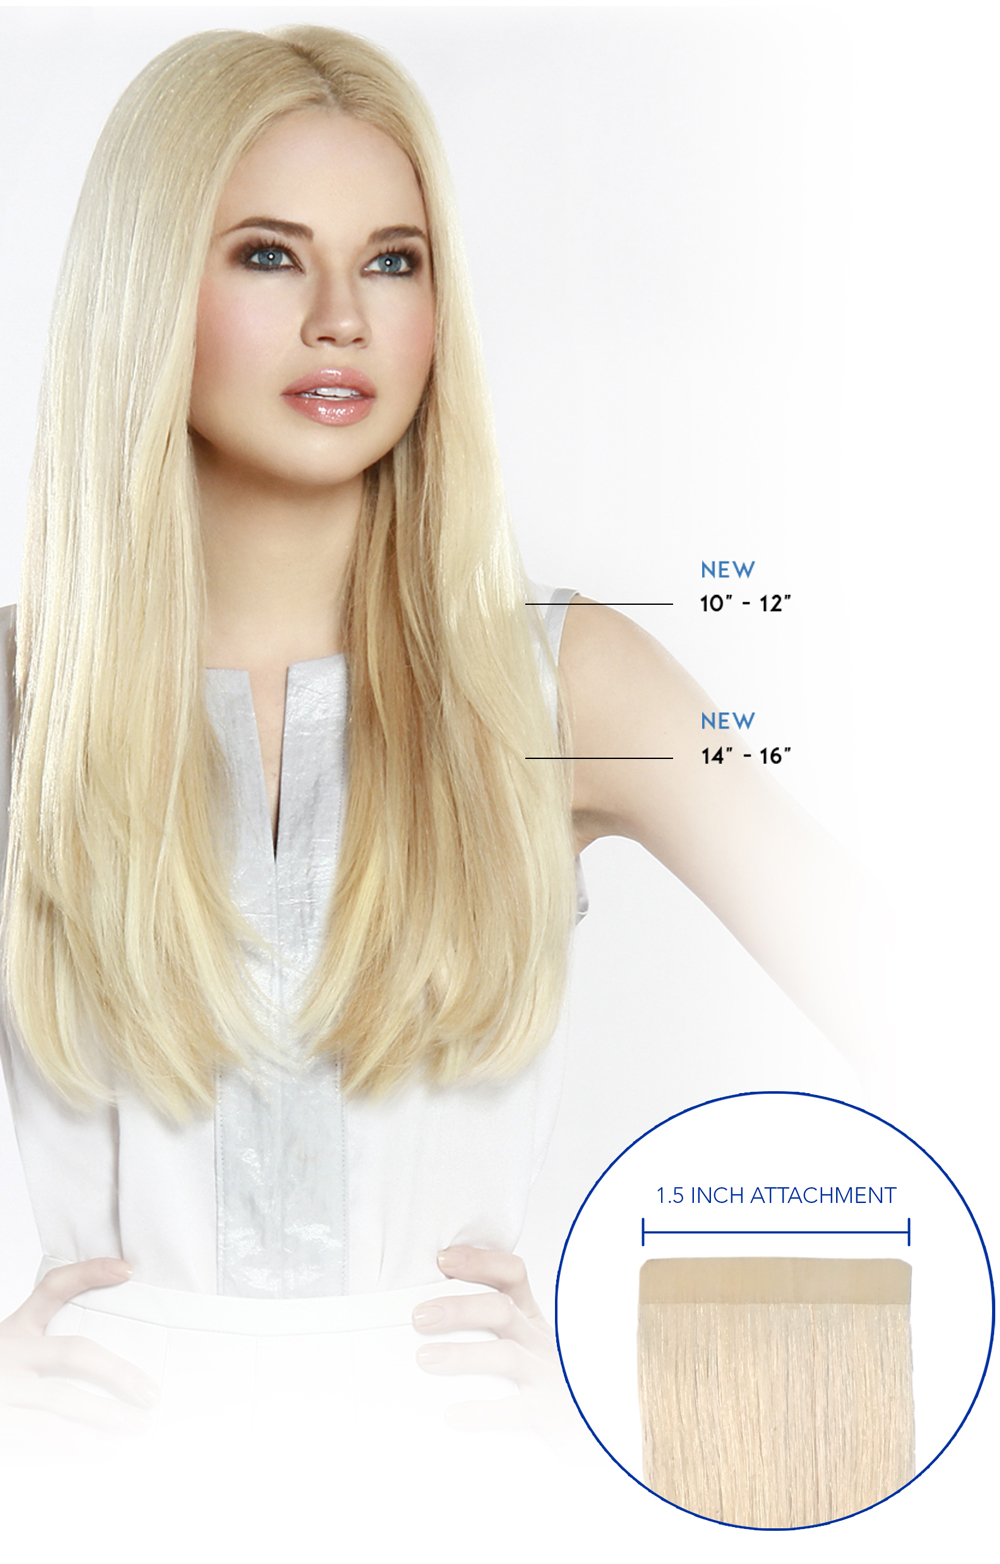 "10"" - 12"" and 14"" - 16"" Hair Extensions: 1.5 INCH ATTACHMENT"